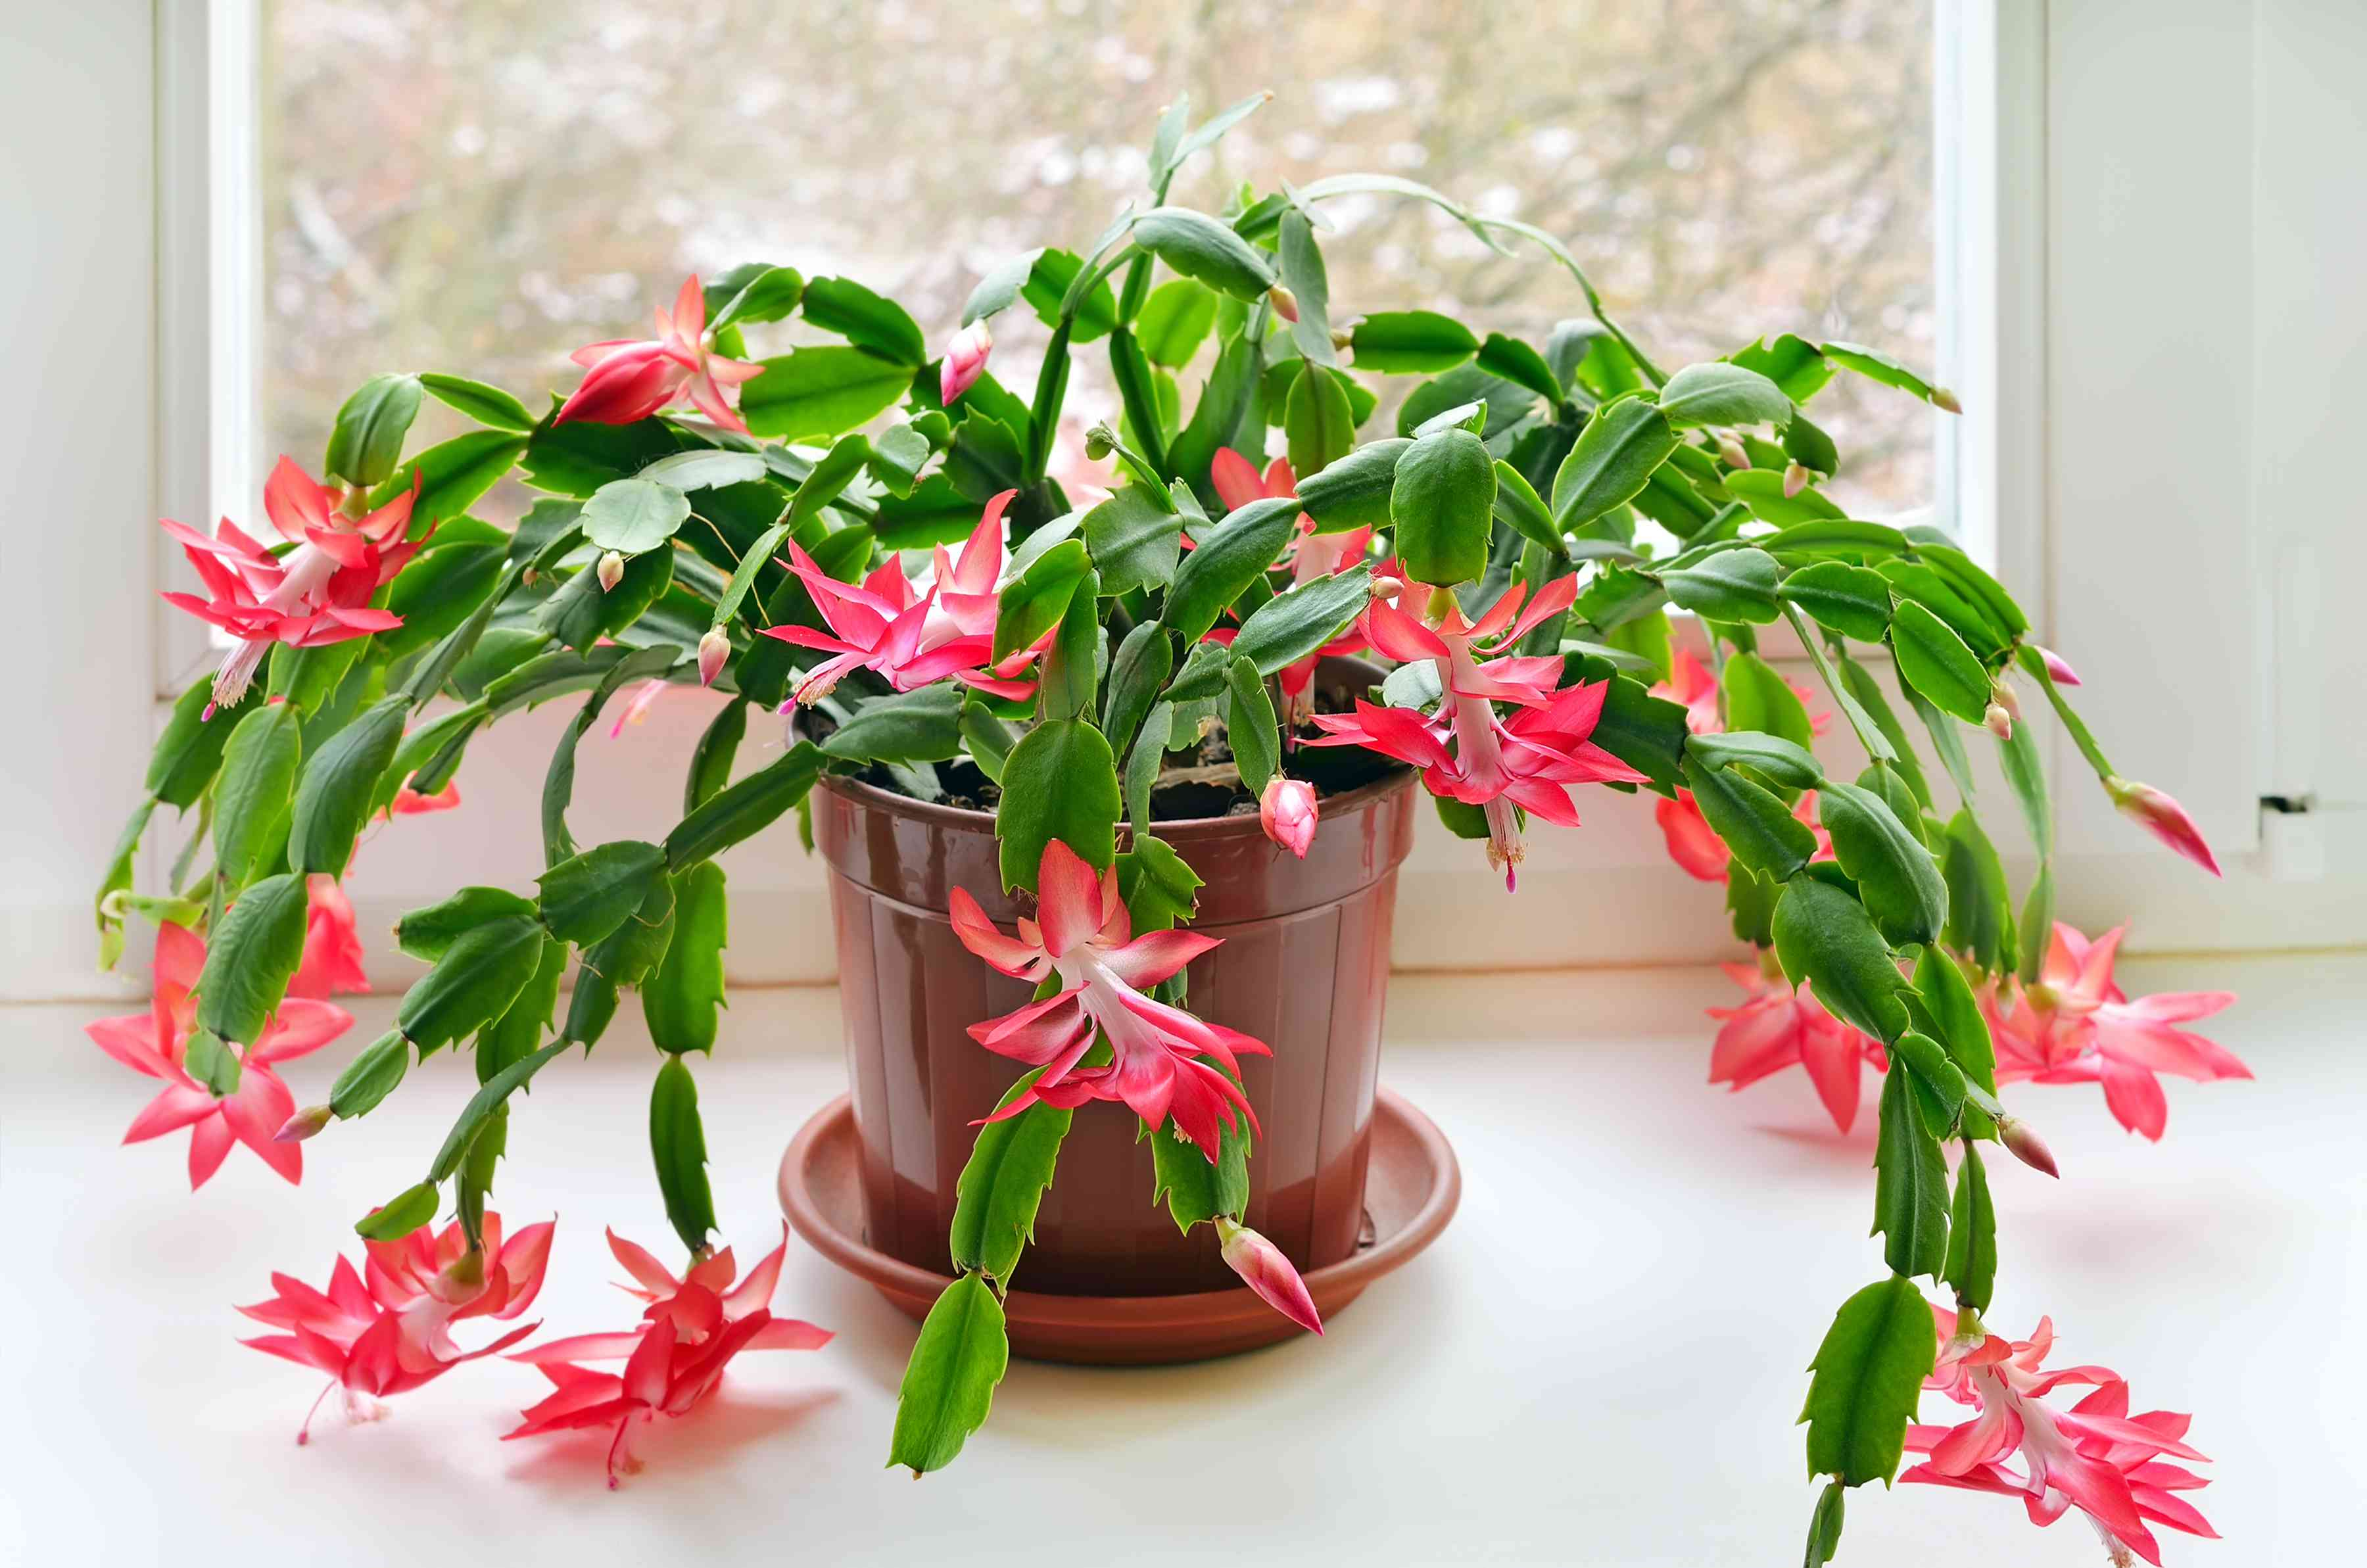 A flowering Christmas cactus in a small brown pot in front of a window